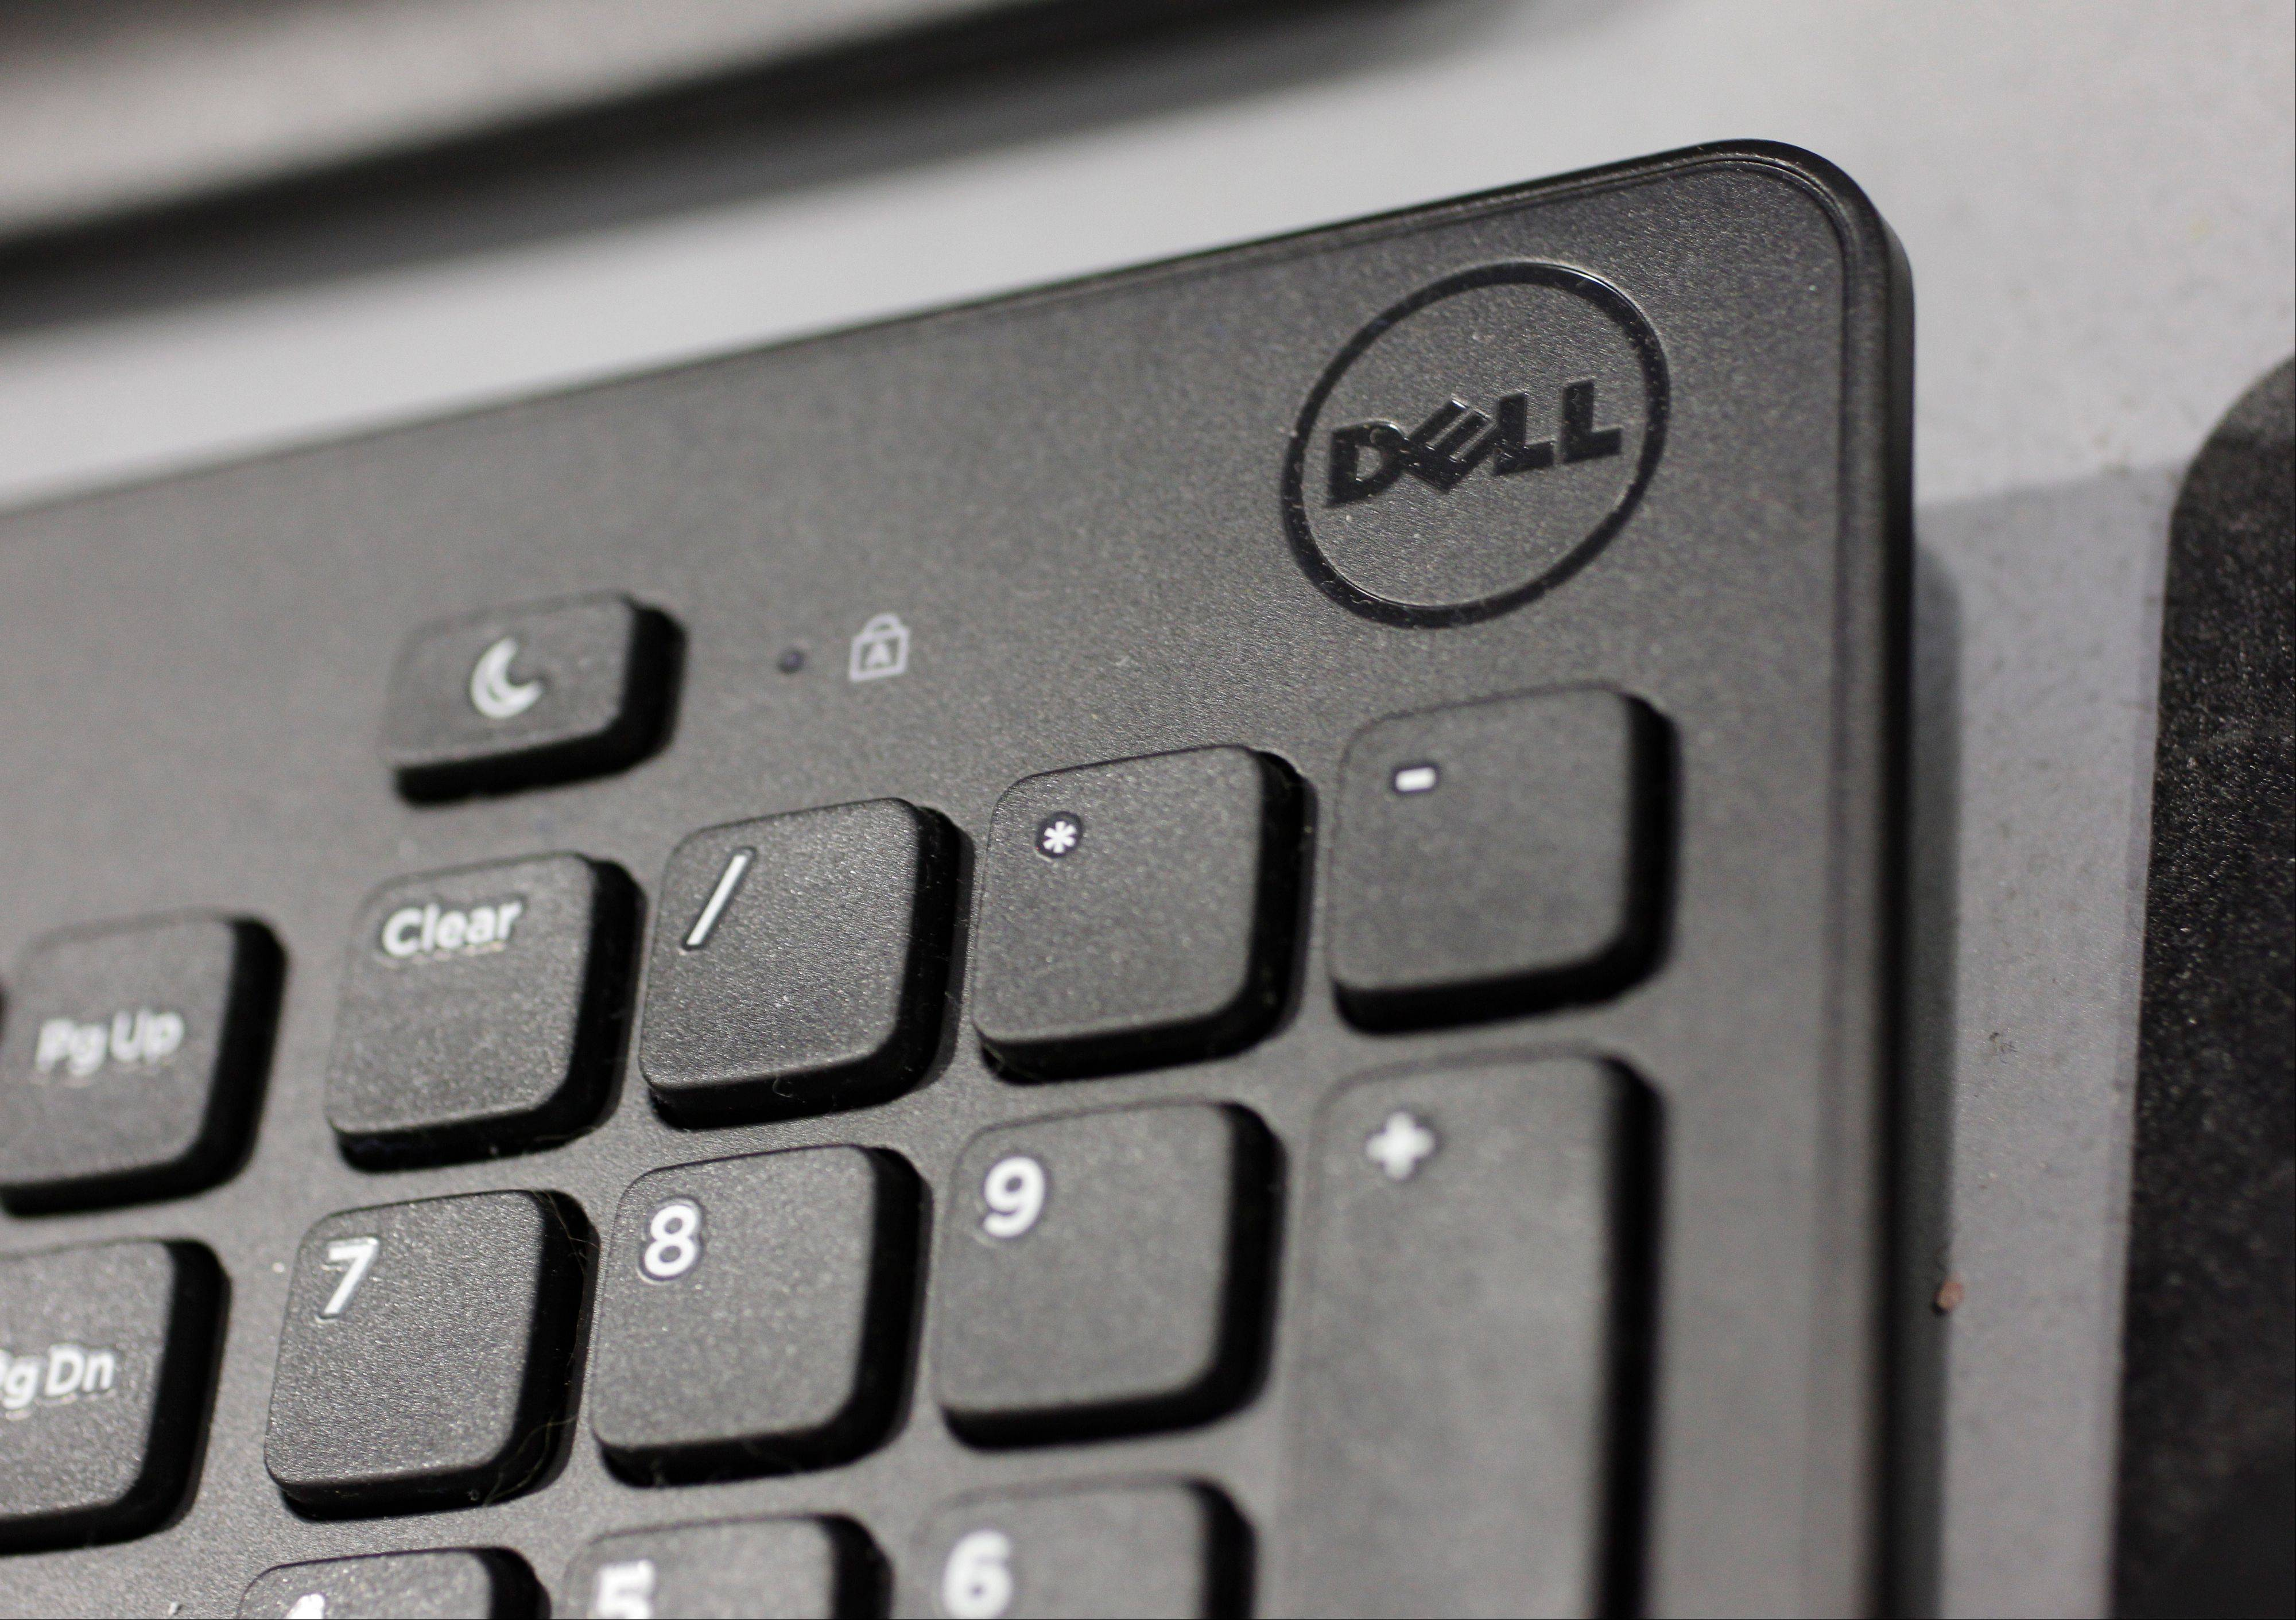 Dell hasn't said whether it's interested in selling, but going private would enable the company to overhaul its operations without having to meet Wall Street's demands for higher quarterly earnings.